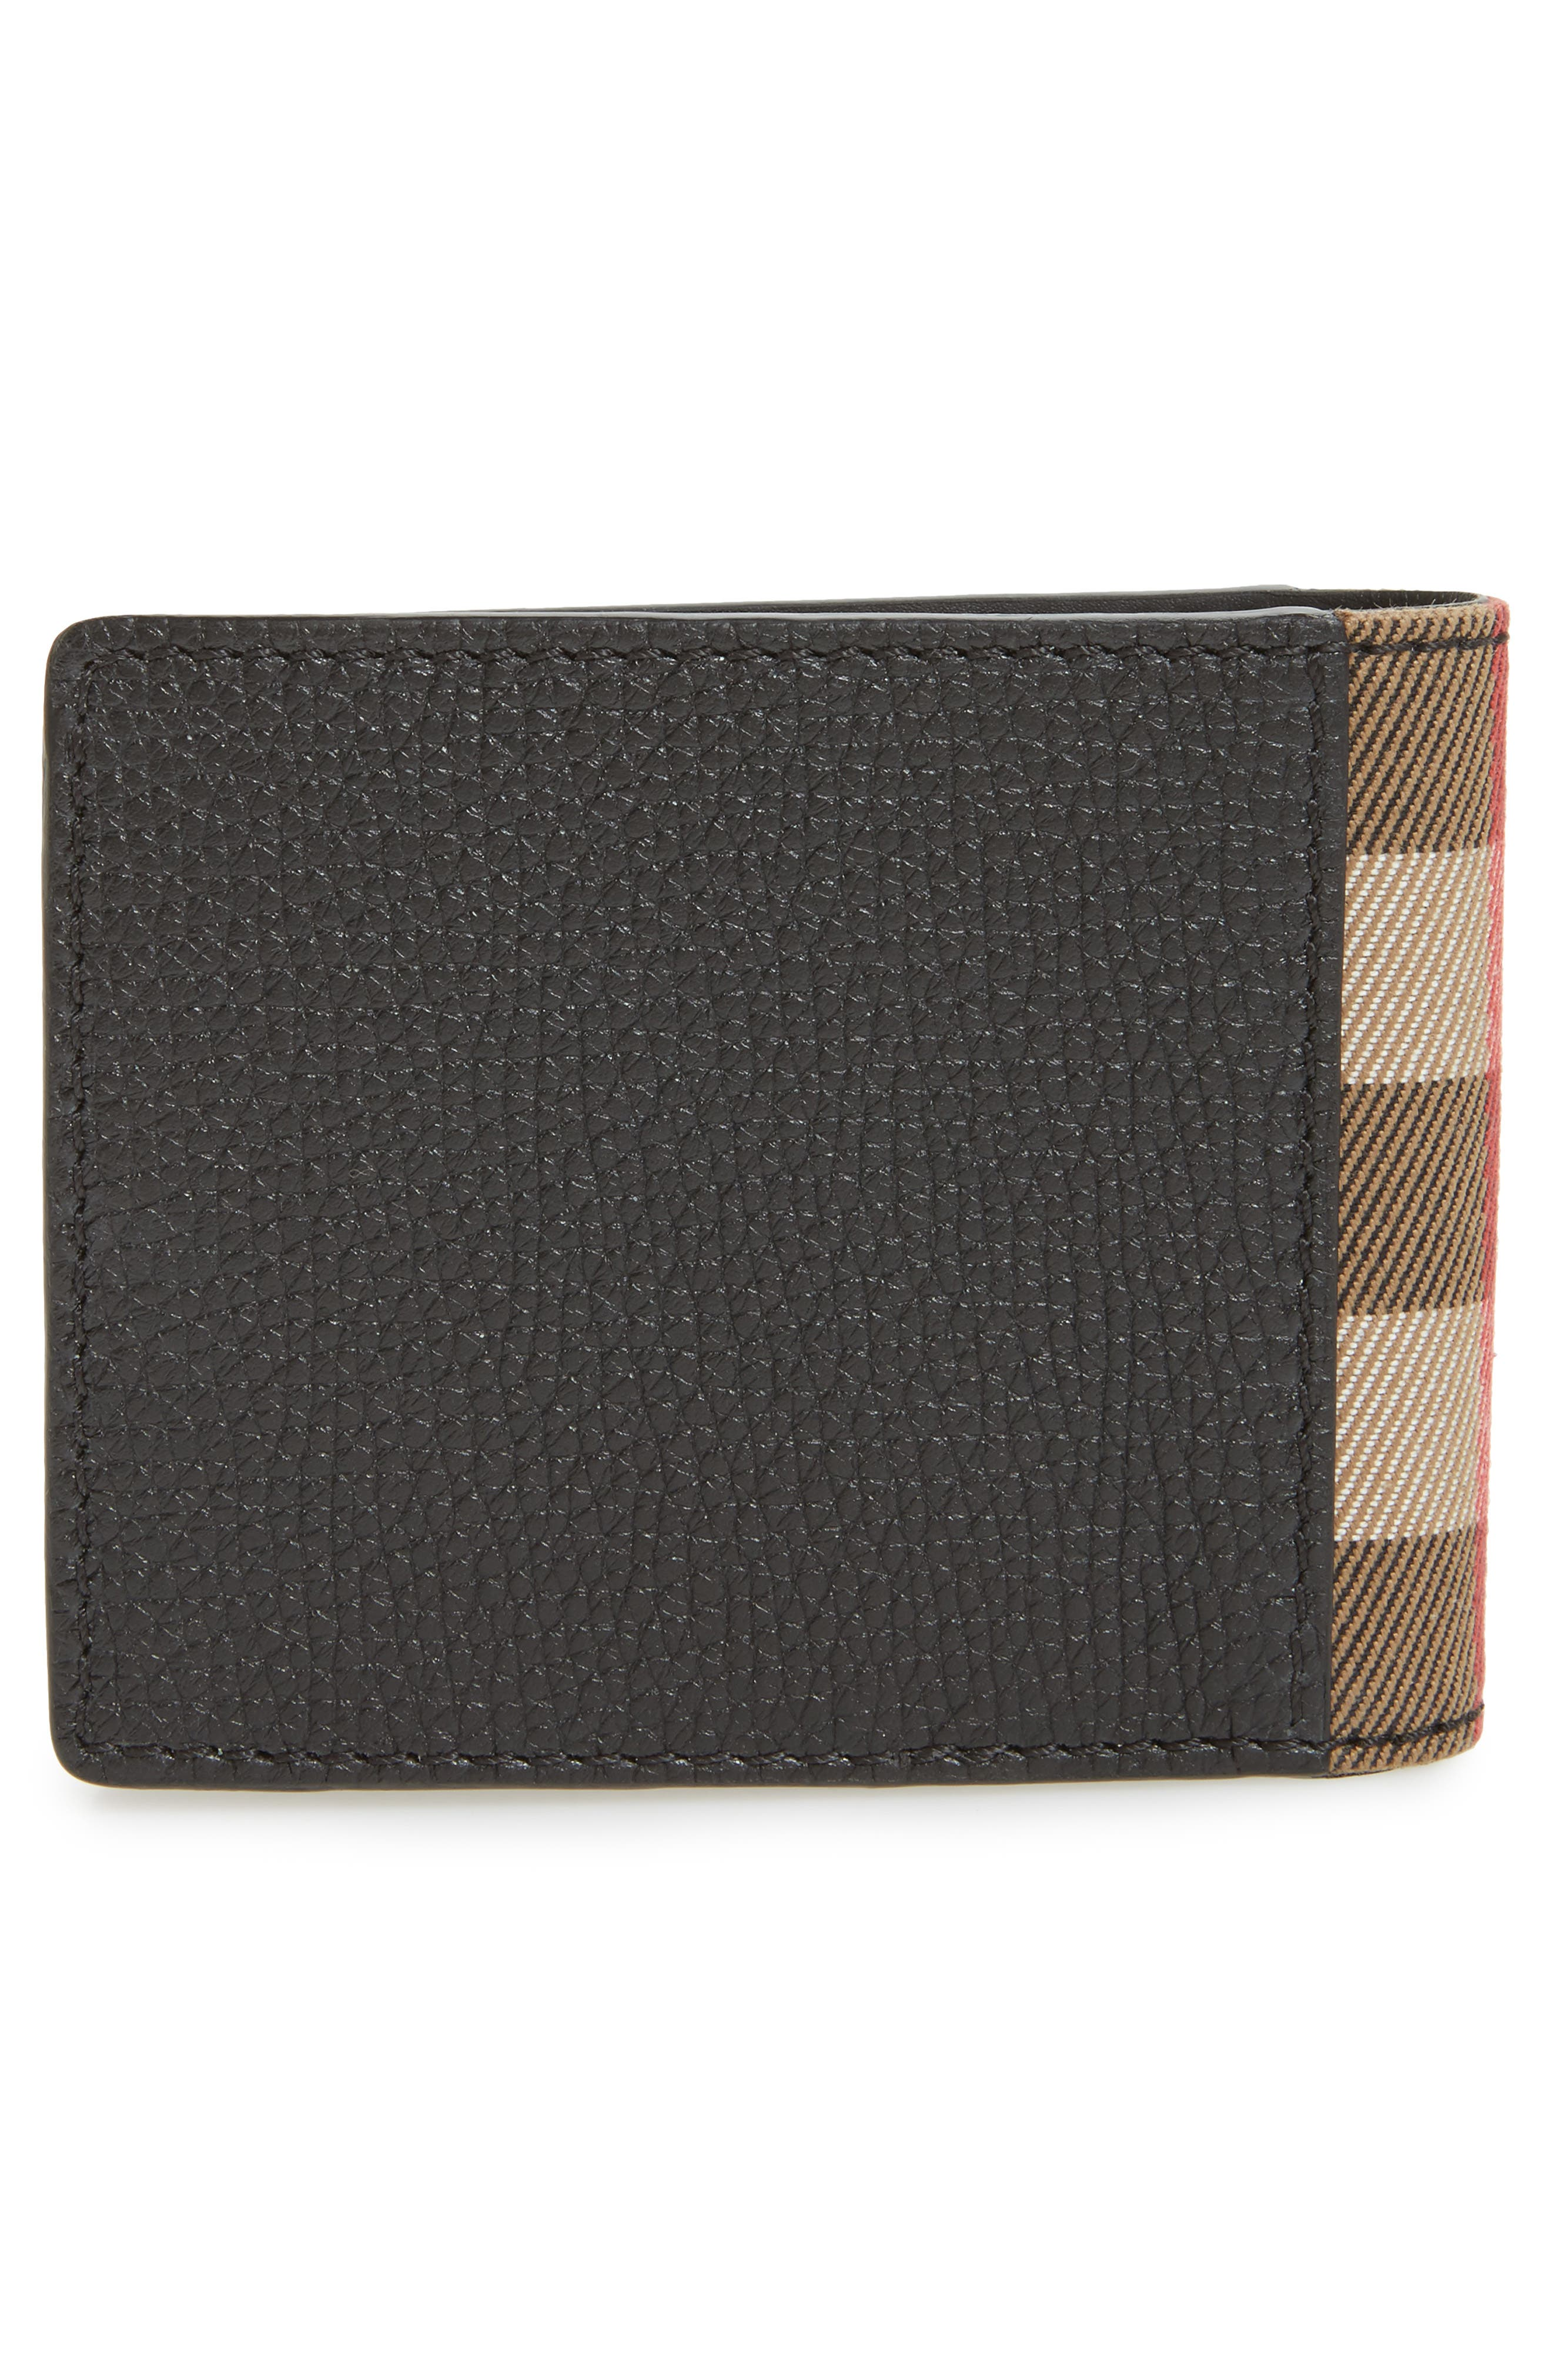 Check Leather Wallet,                             Alternate thumbnail 3, color,                             001